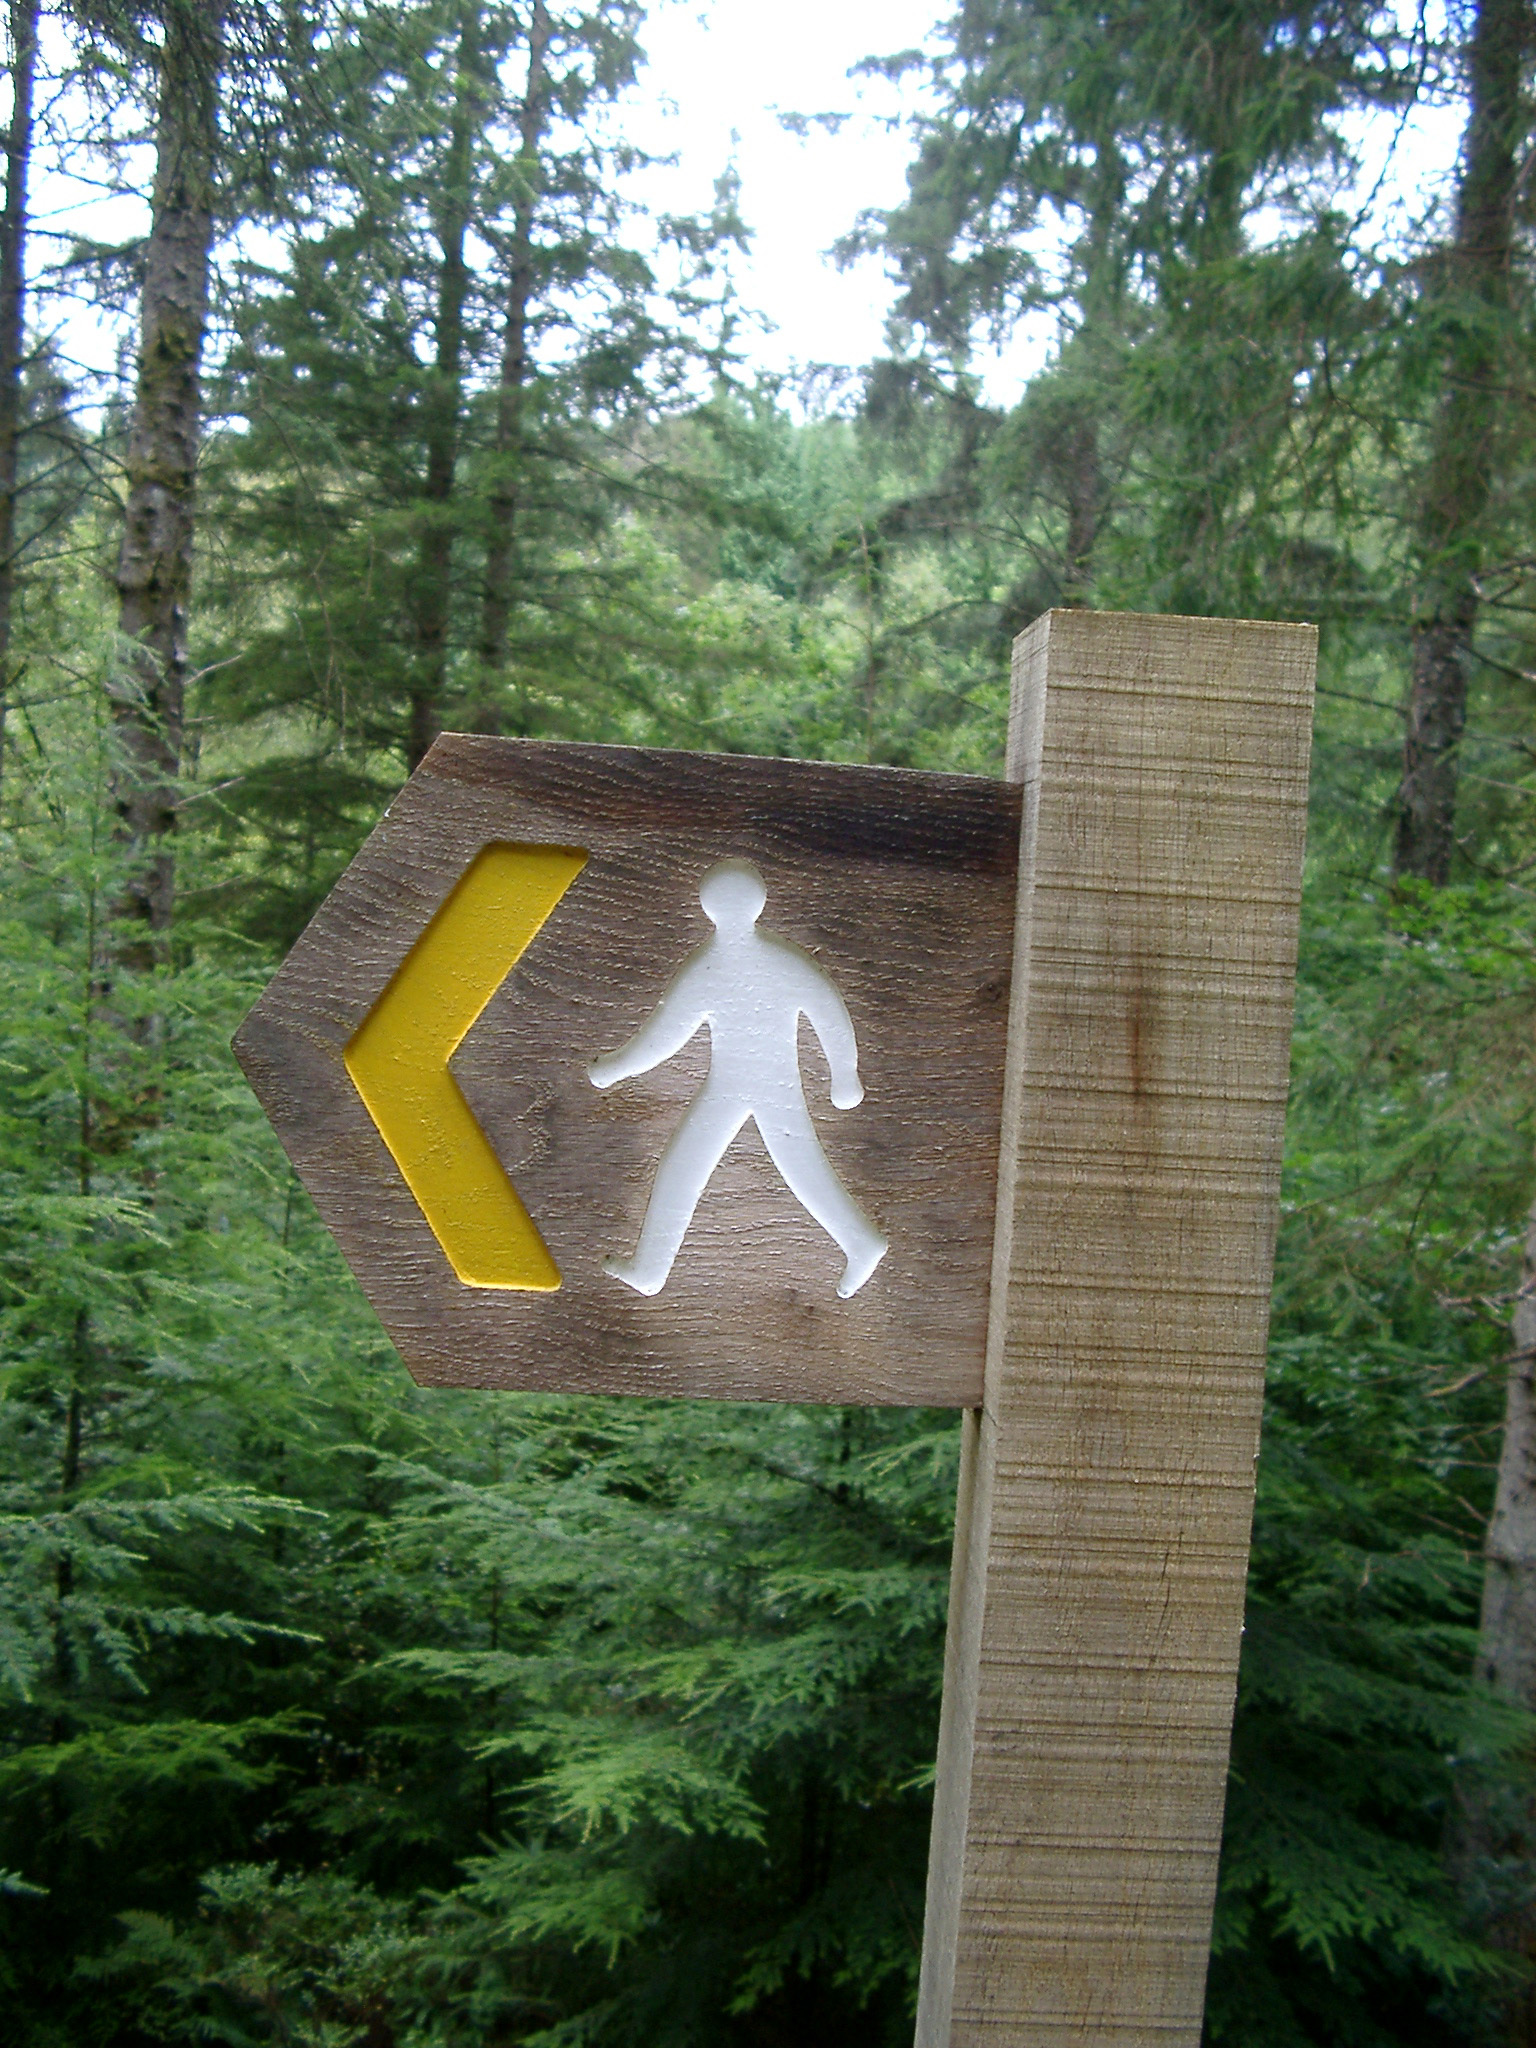 Walking sign for a woodland trail with the silhouette of a man walking and a left pointing arrow indicating the direction against a background of leafy green trees